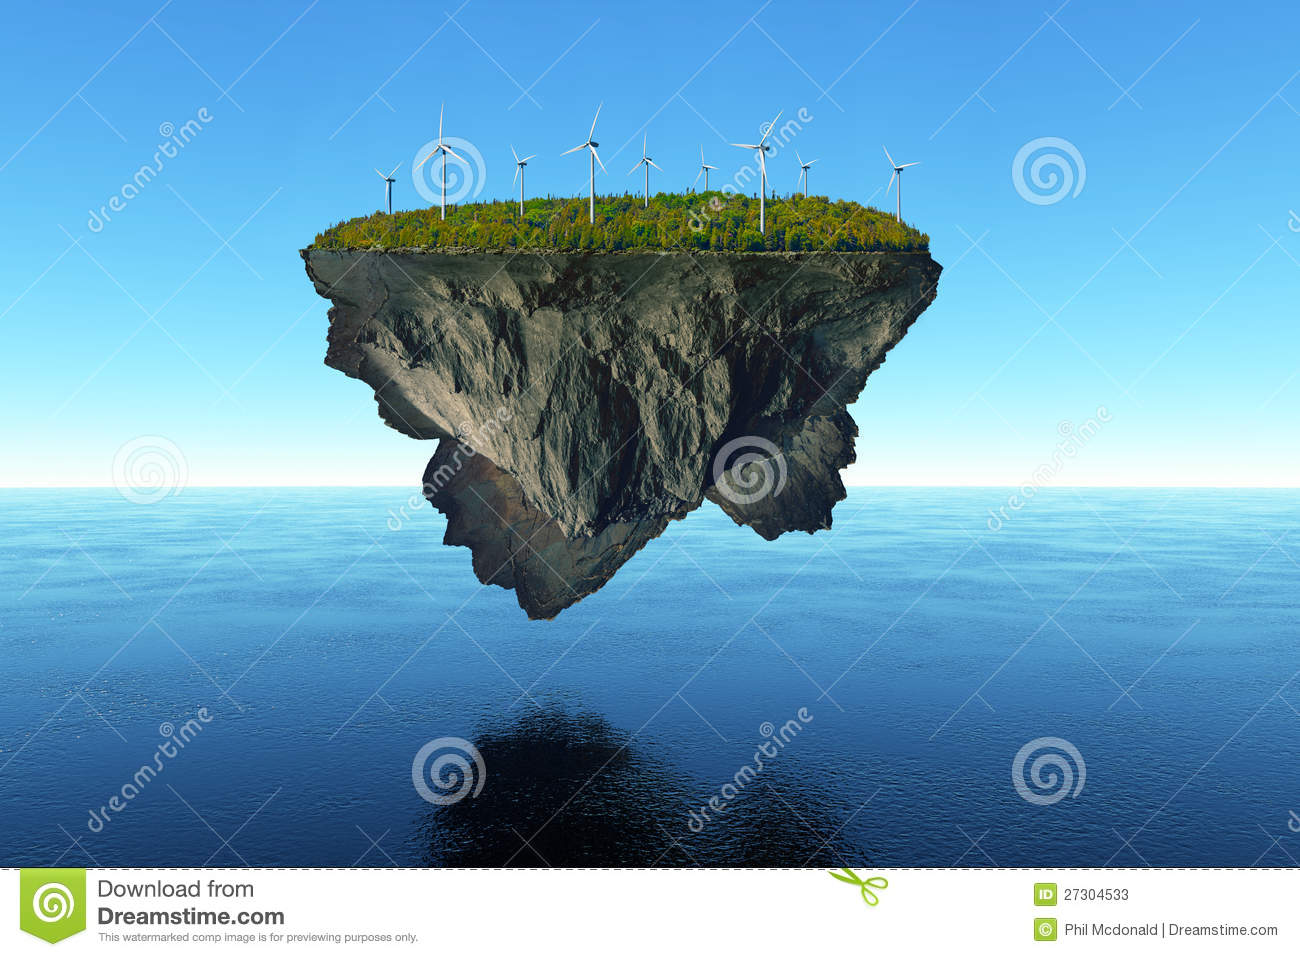 massive island covered in trees floats over the calm water, powered ...